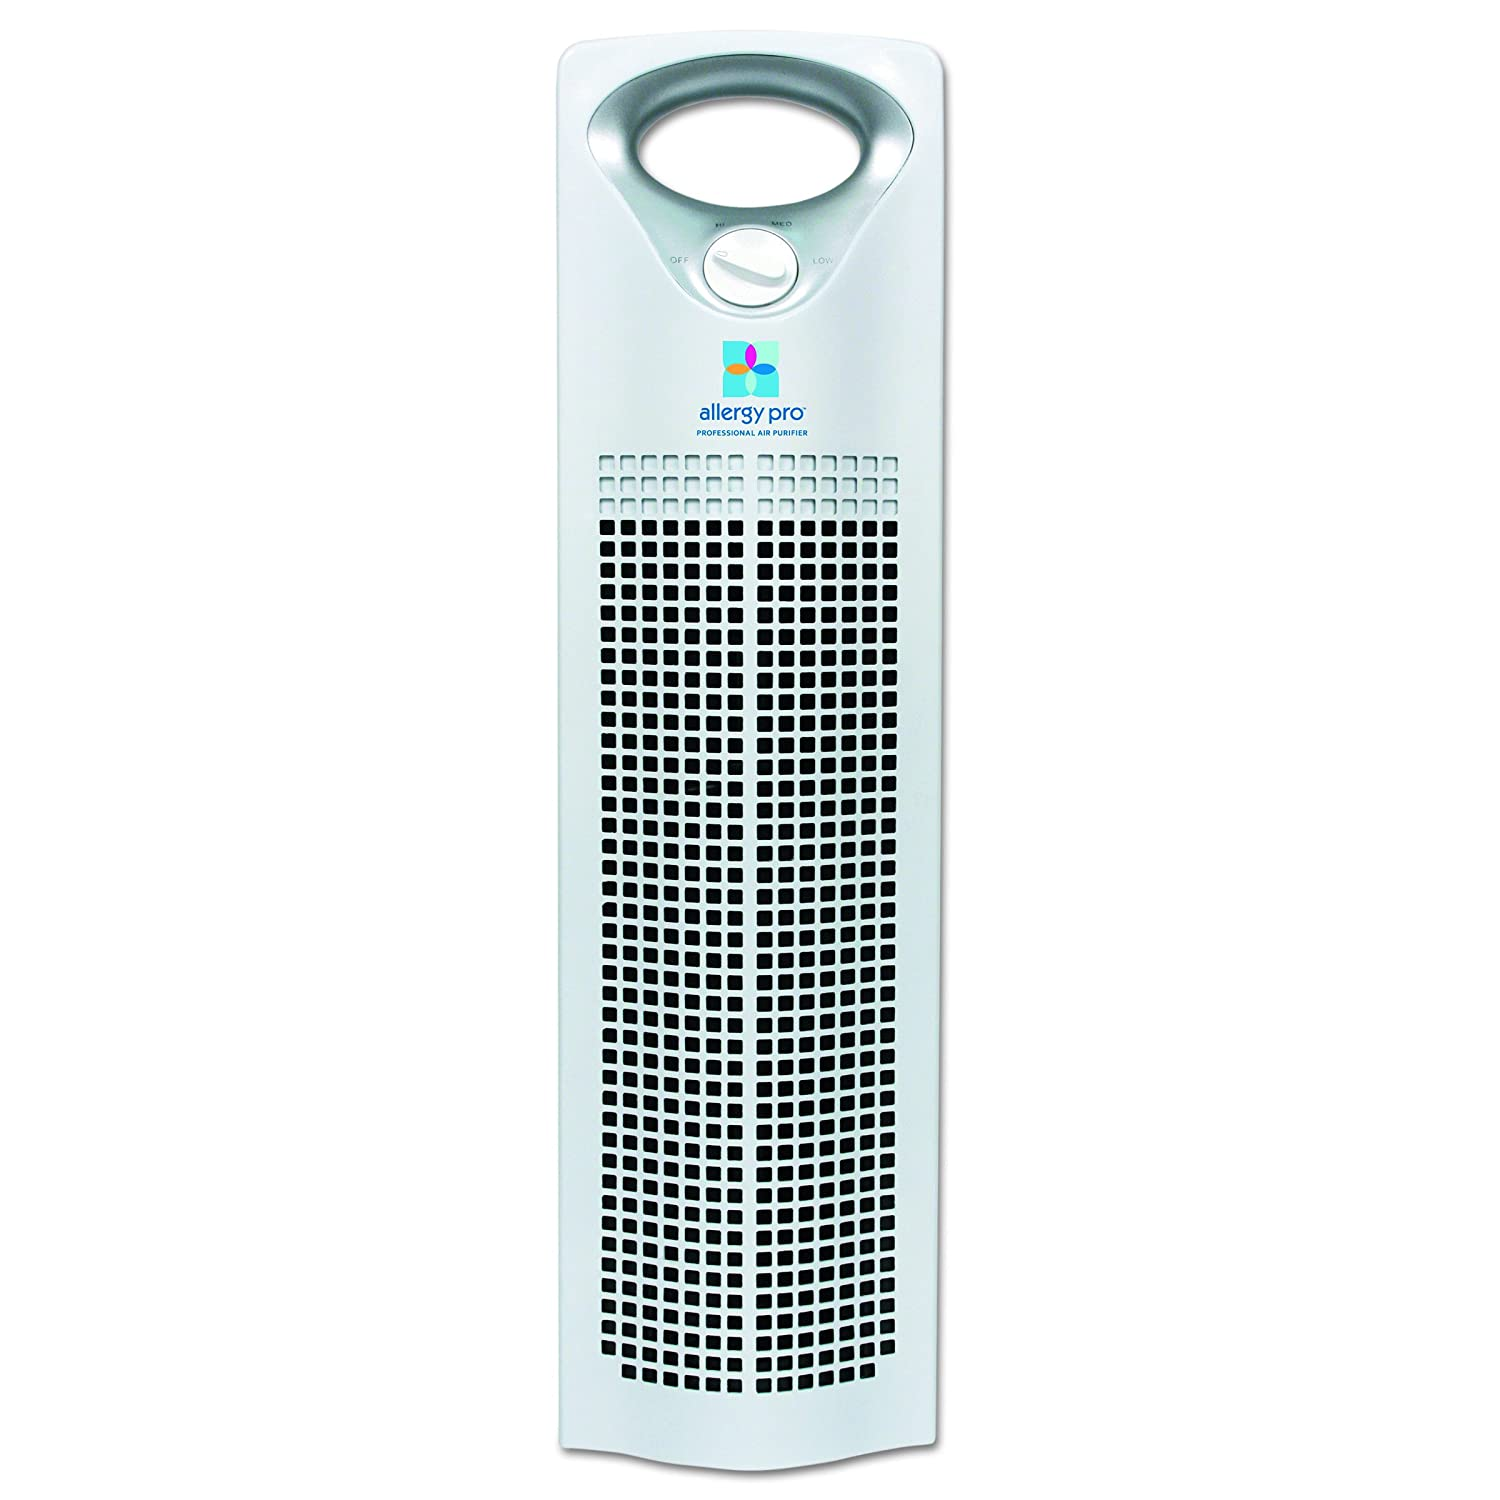 Envion Boneco Allergy Pro 200 – Easy to Clean HEPA Air Purifier Tower – Captures 99.97% of Pollen, dust, pet Dander, Mold and Smoke Down to 0.3 microns-350 Sq Ft Capacity